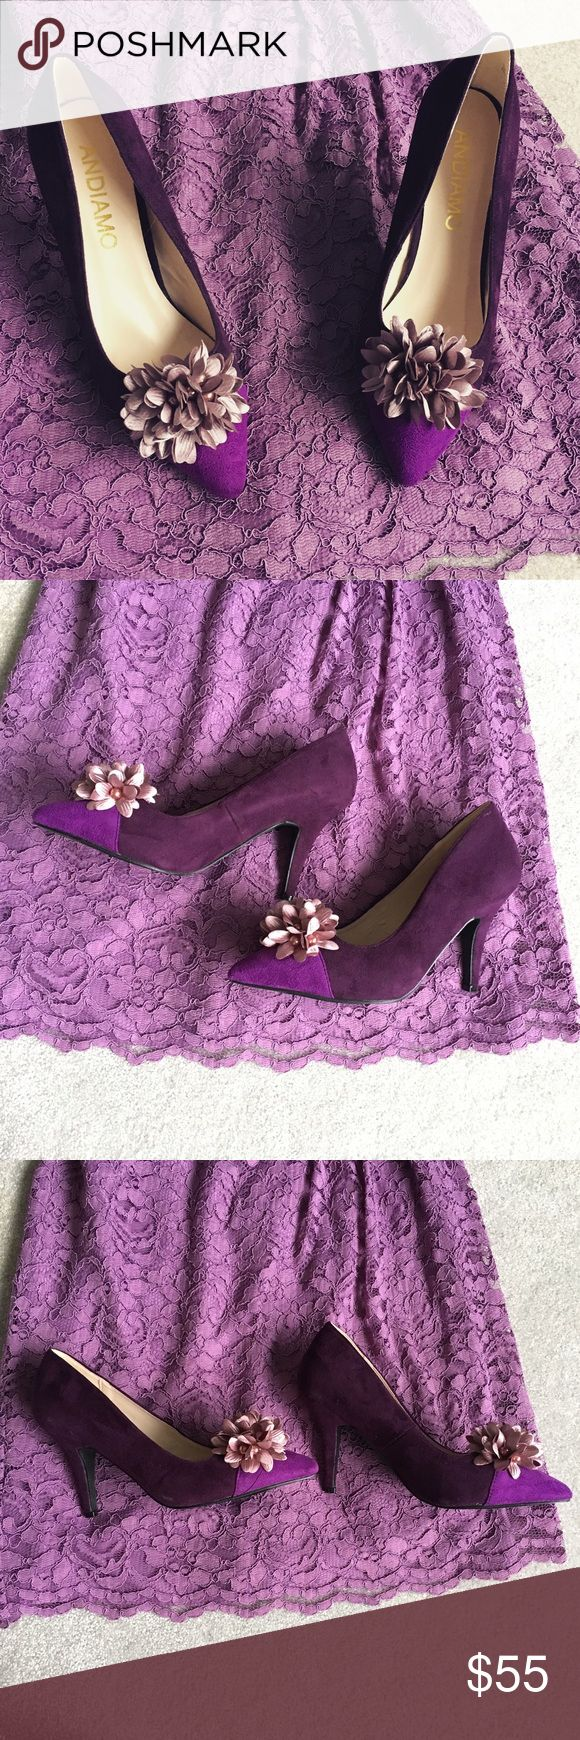 Andiamo Purple Suede Flower Toe Heels 7 NWOT NWOT. These gorgeous unique heels are brand new! They have some scuff marks from sitting in the box for so long but they have never been worn. They come with the box, but the box is a little bent. Size 7. Andiamo Shoes Heels